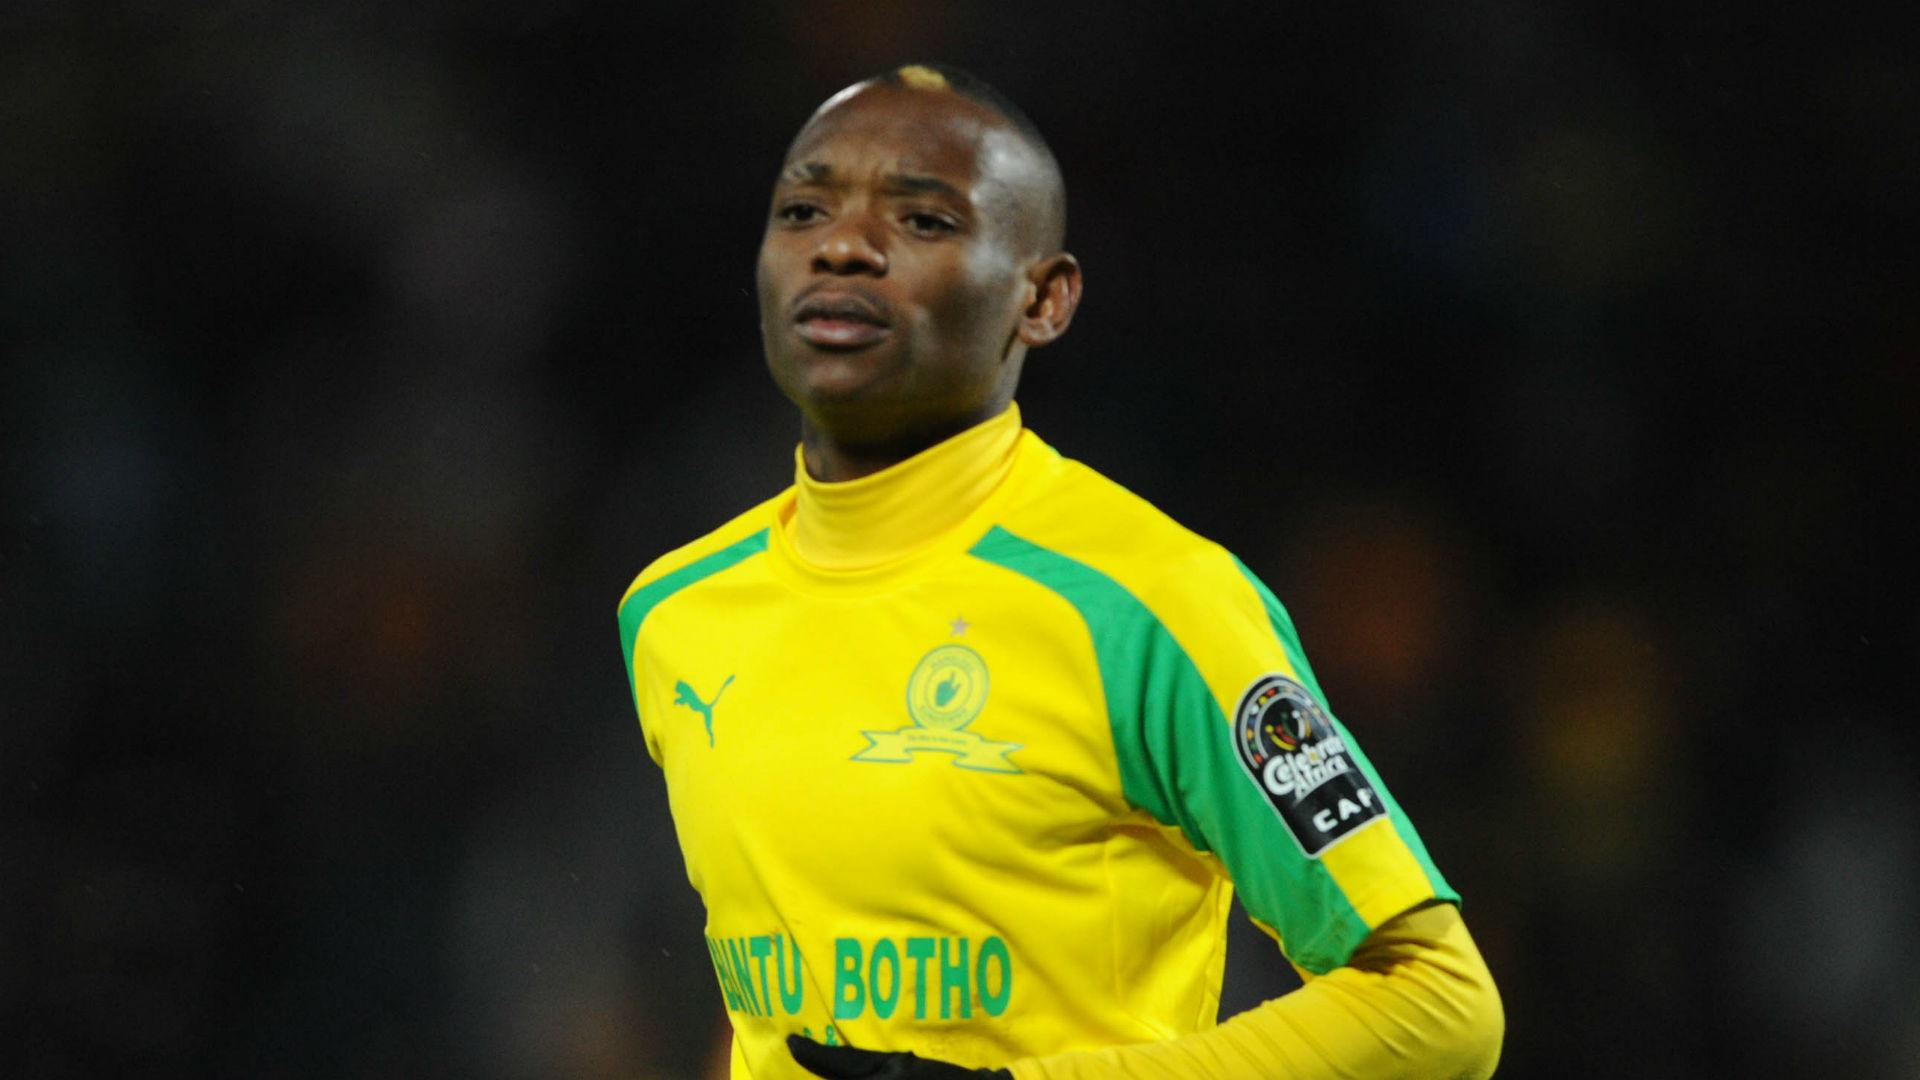 kaizer chiefs would engage sundowns if there was a need to